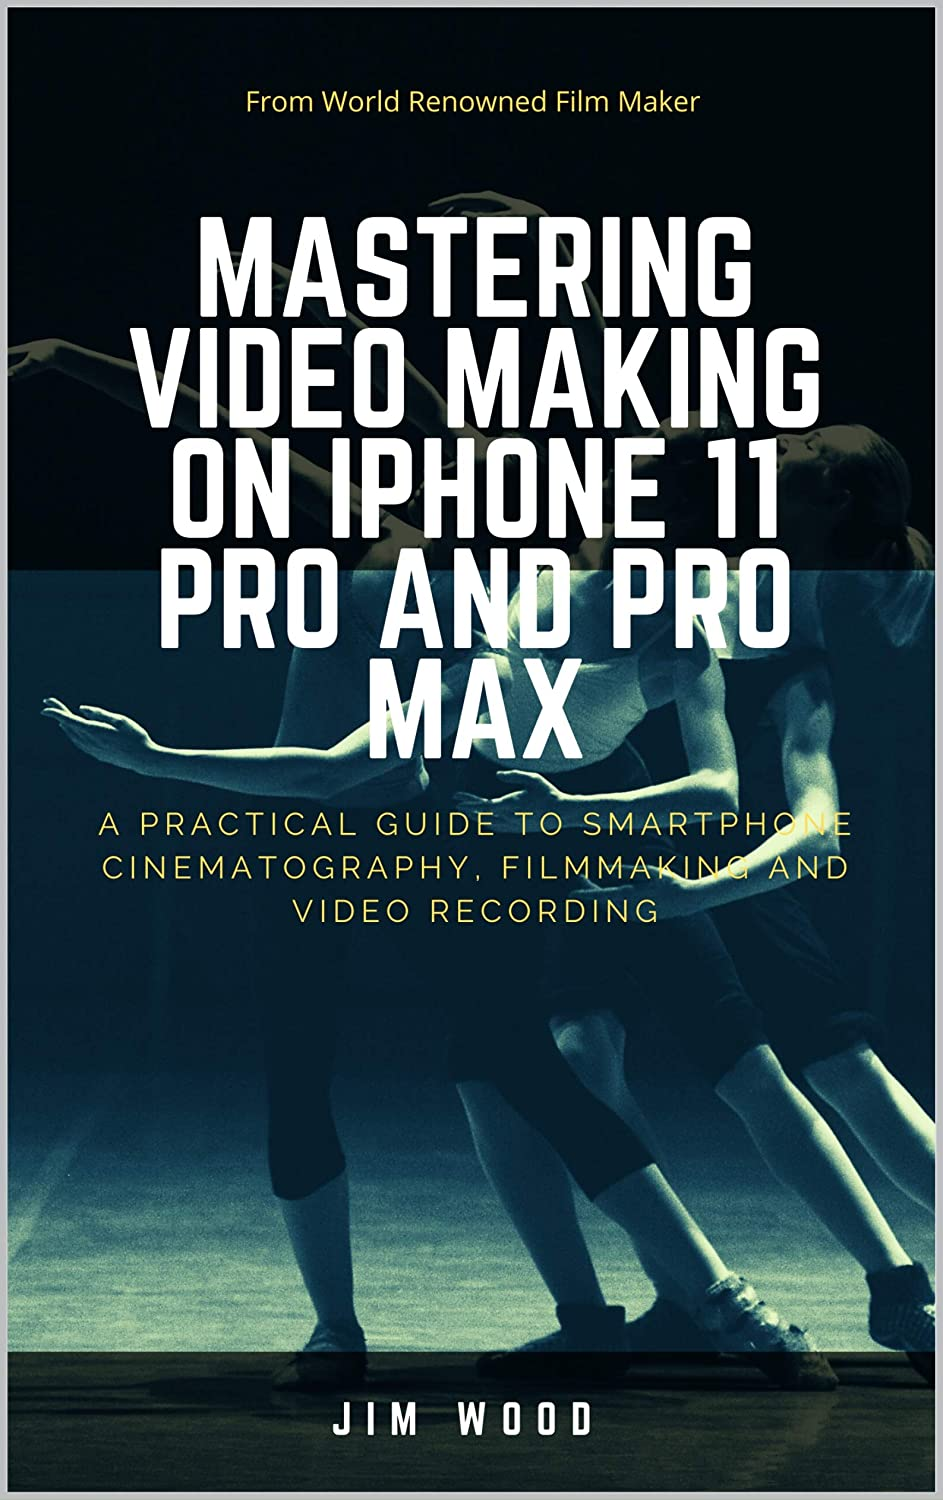 Mastering Video Making on iPhone 11 Pro and Pro Max: A Practical ...